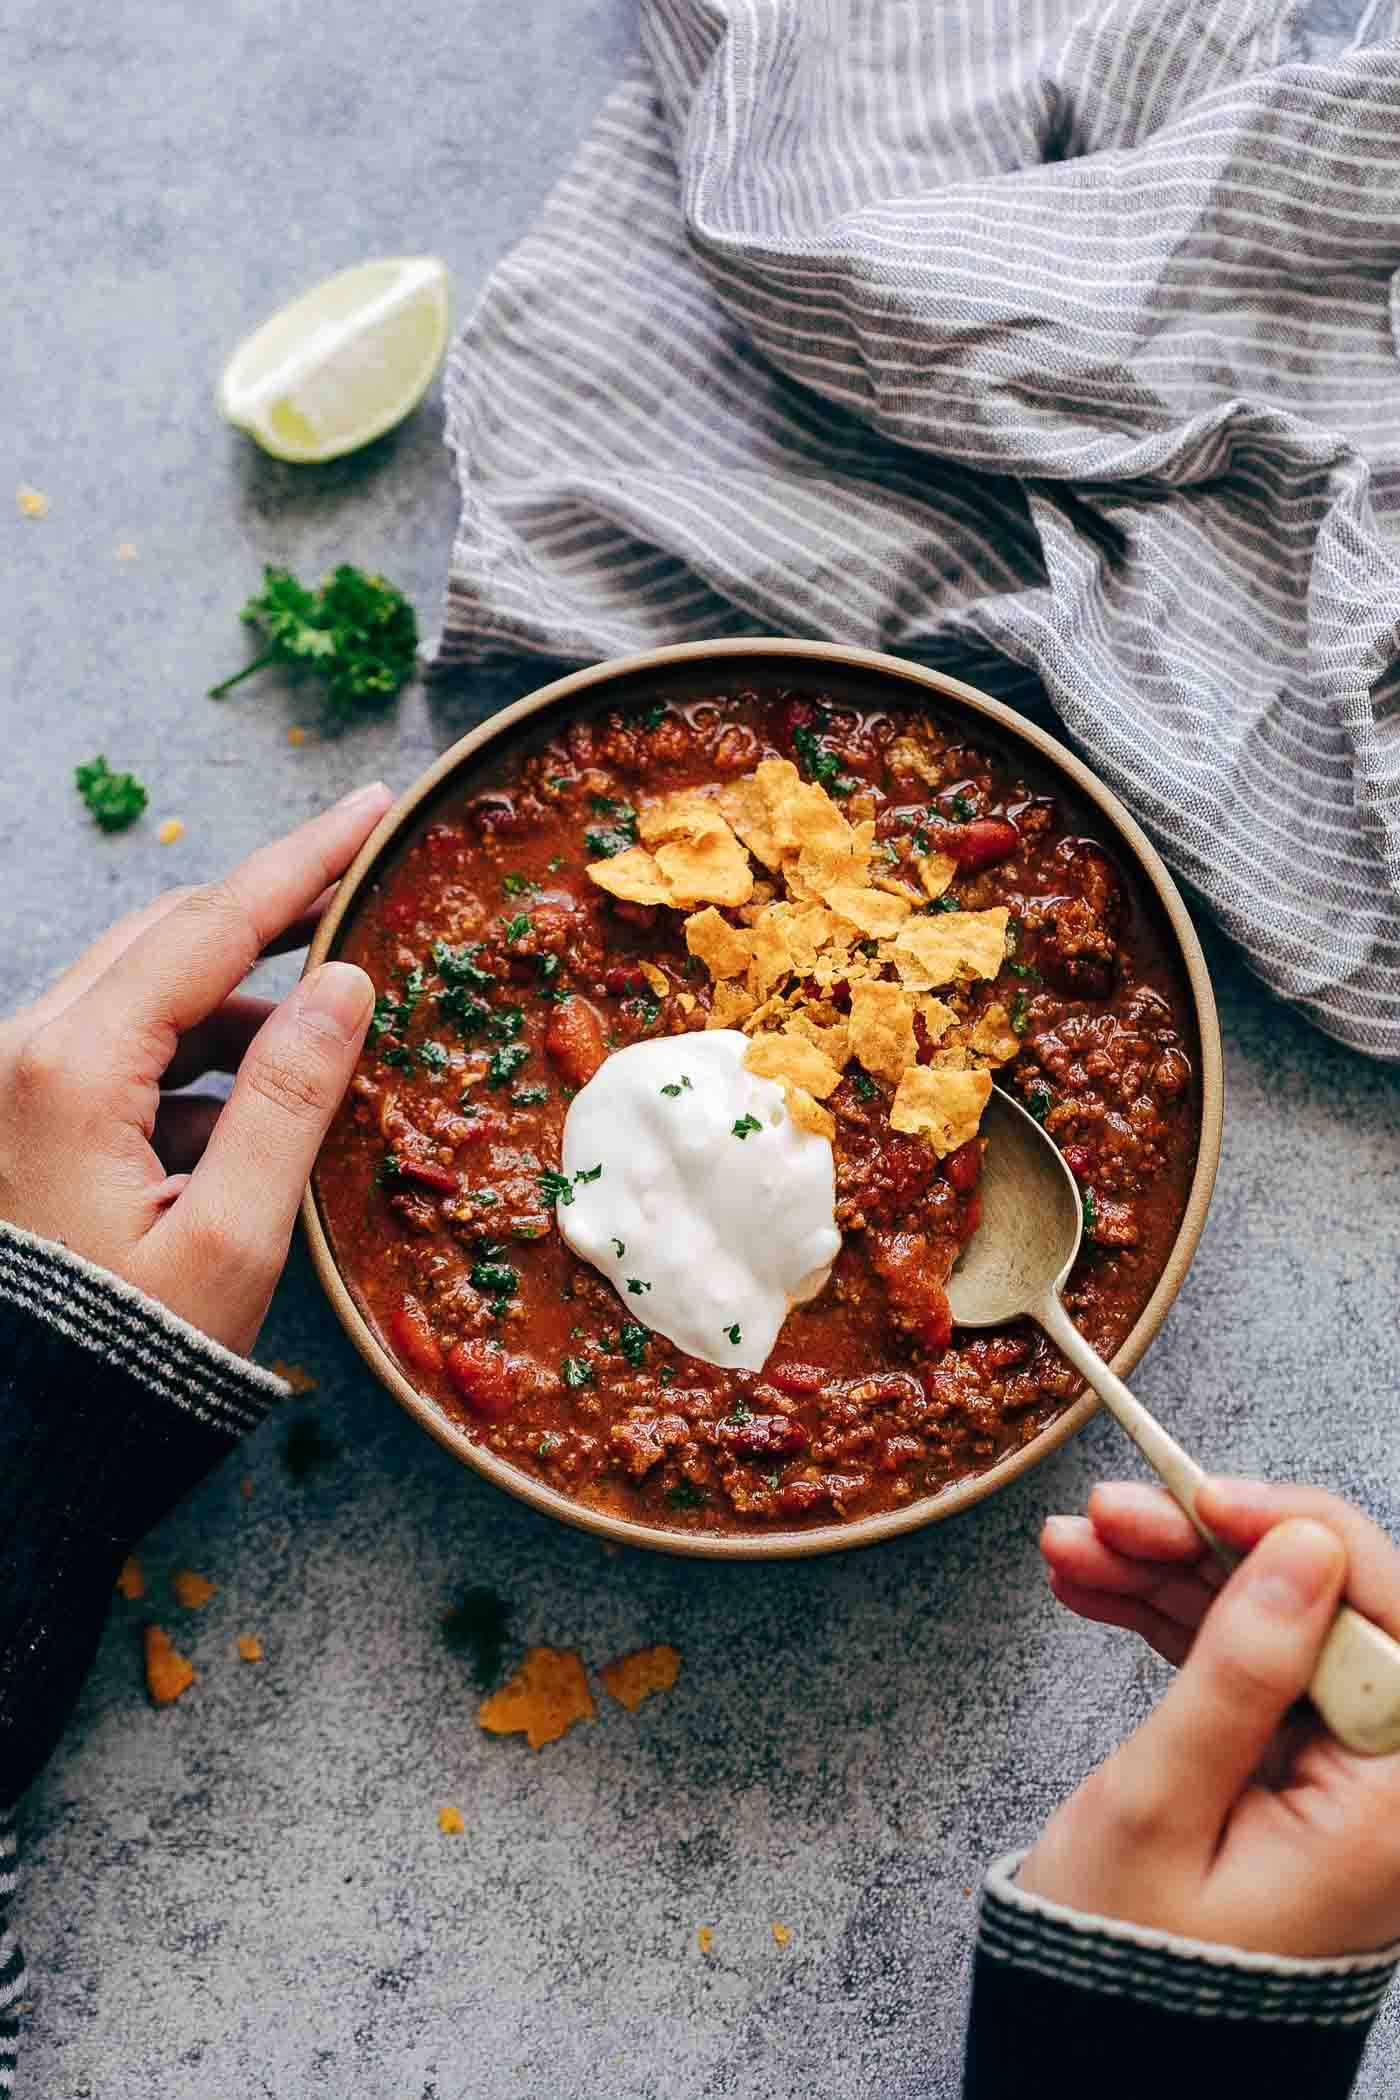 Instant Pot Chipotle Chili from myfoodstory.com on foodiecrush.com